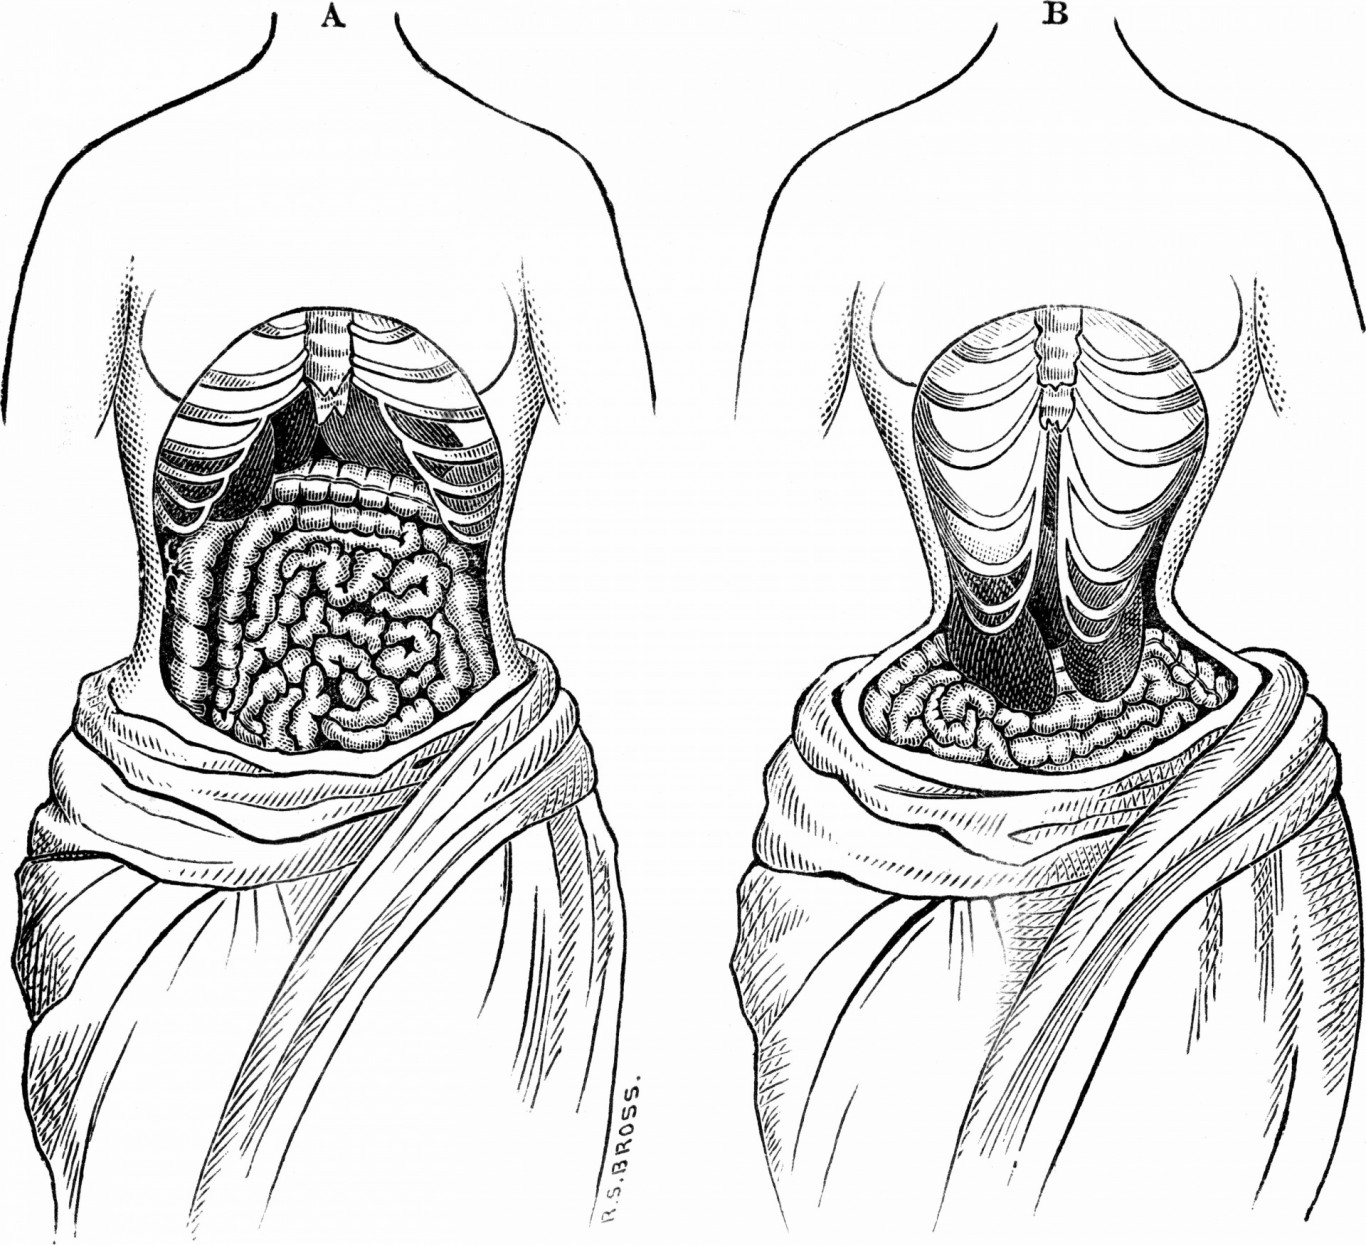 waist-training-effects-health-hazards-organ-displacement